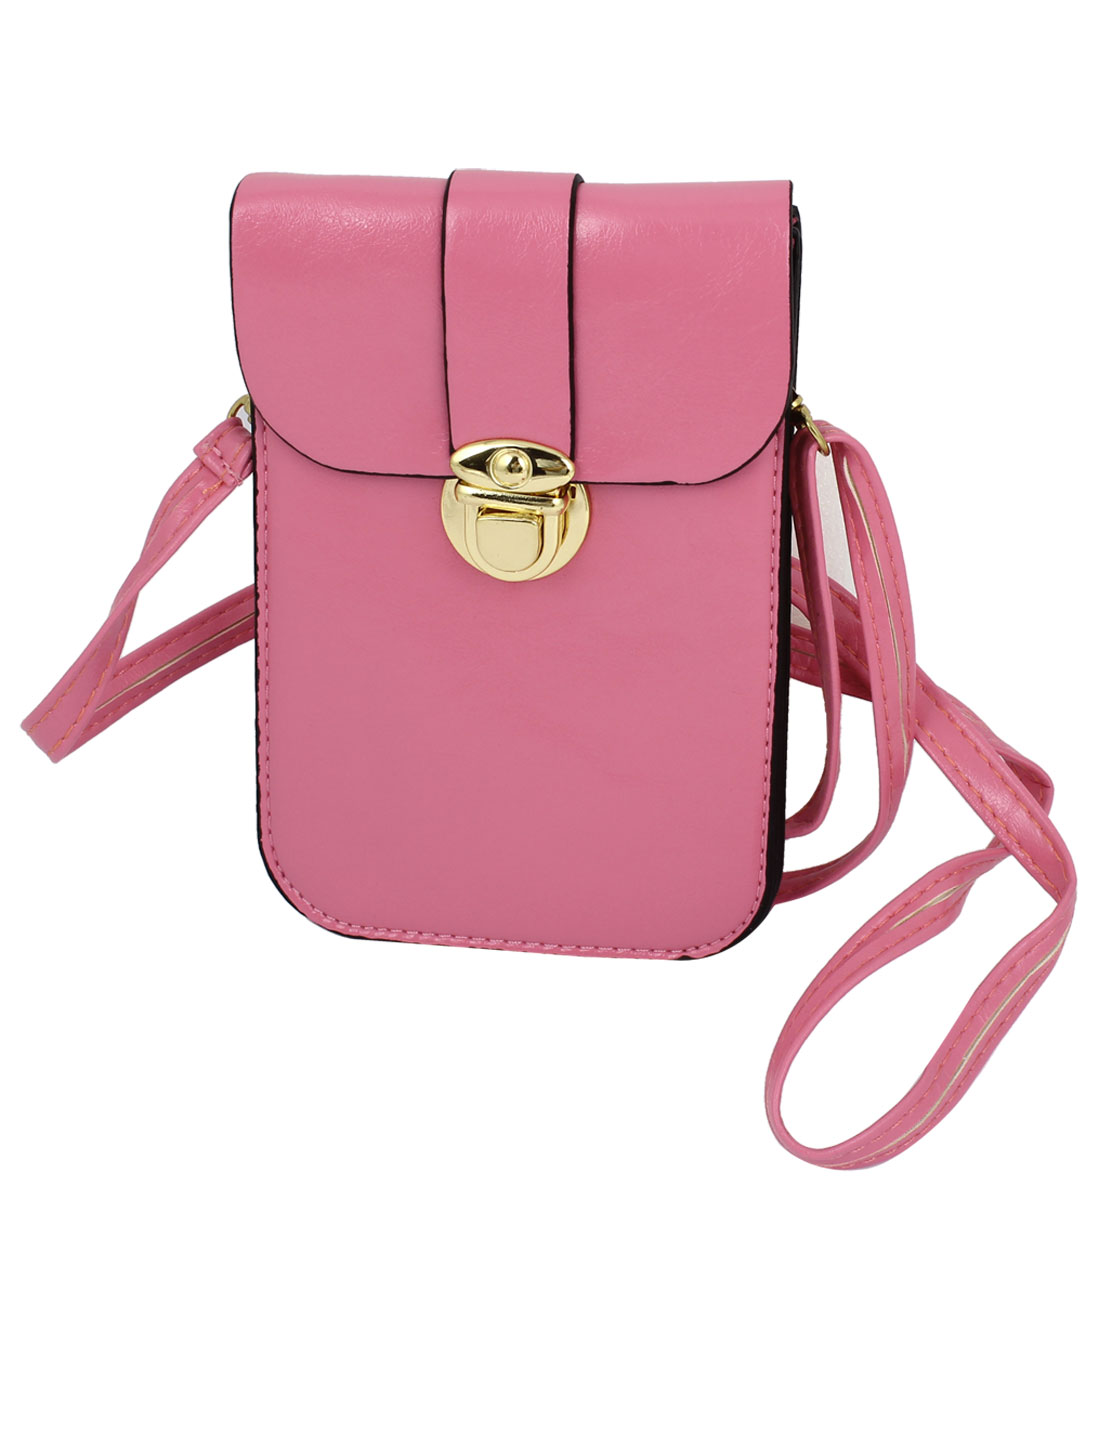 Ladies Faux Leather 2 Compartments Push Lock Closure Cross-Body Bag Purse Pink